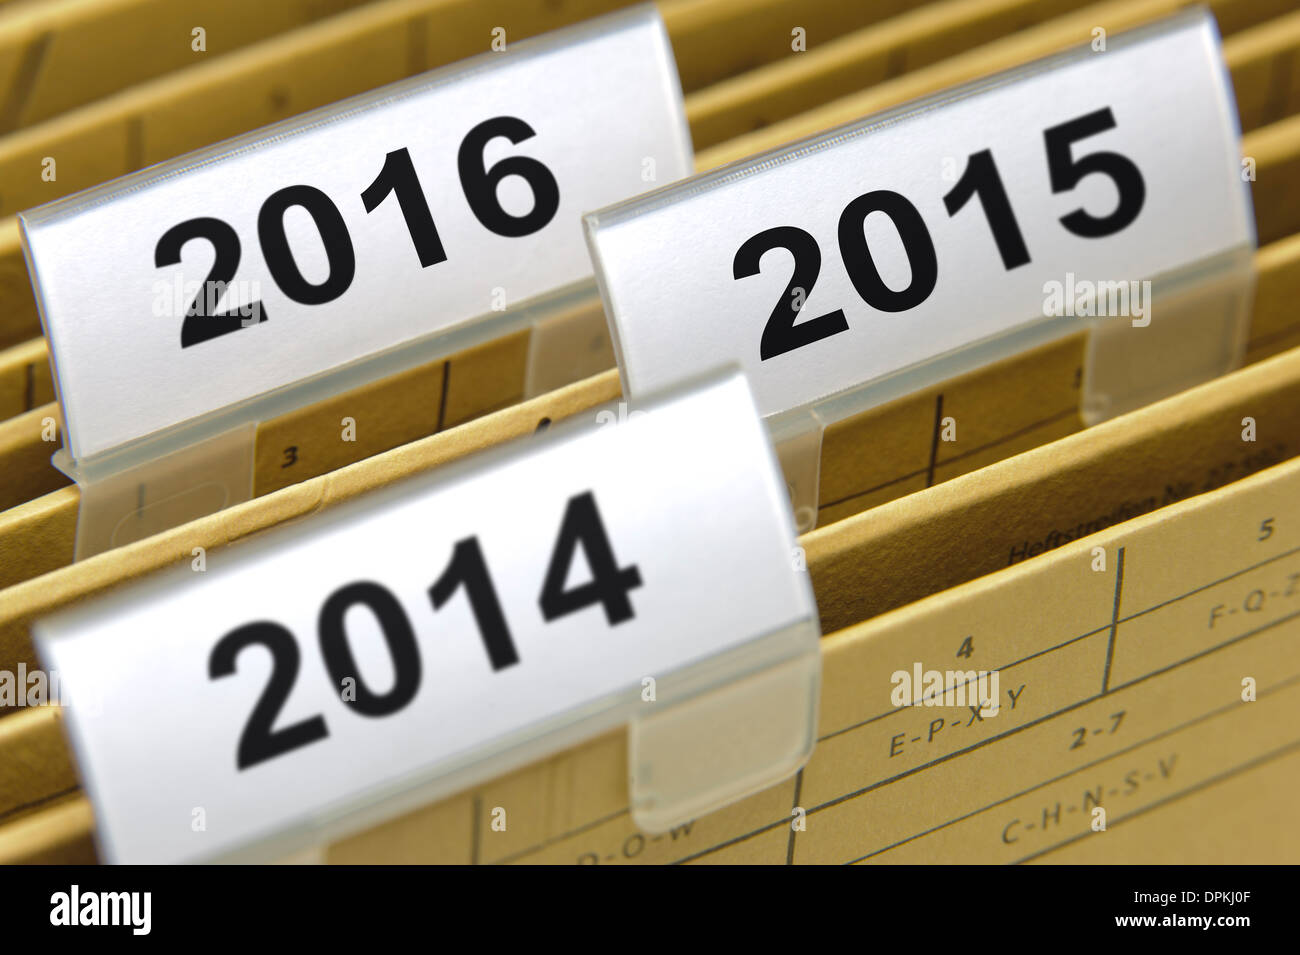 folders marked with years 2014, 2015 and 2016 - Stock Image